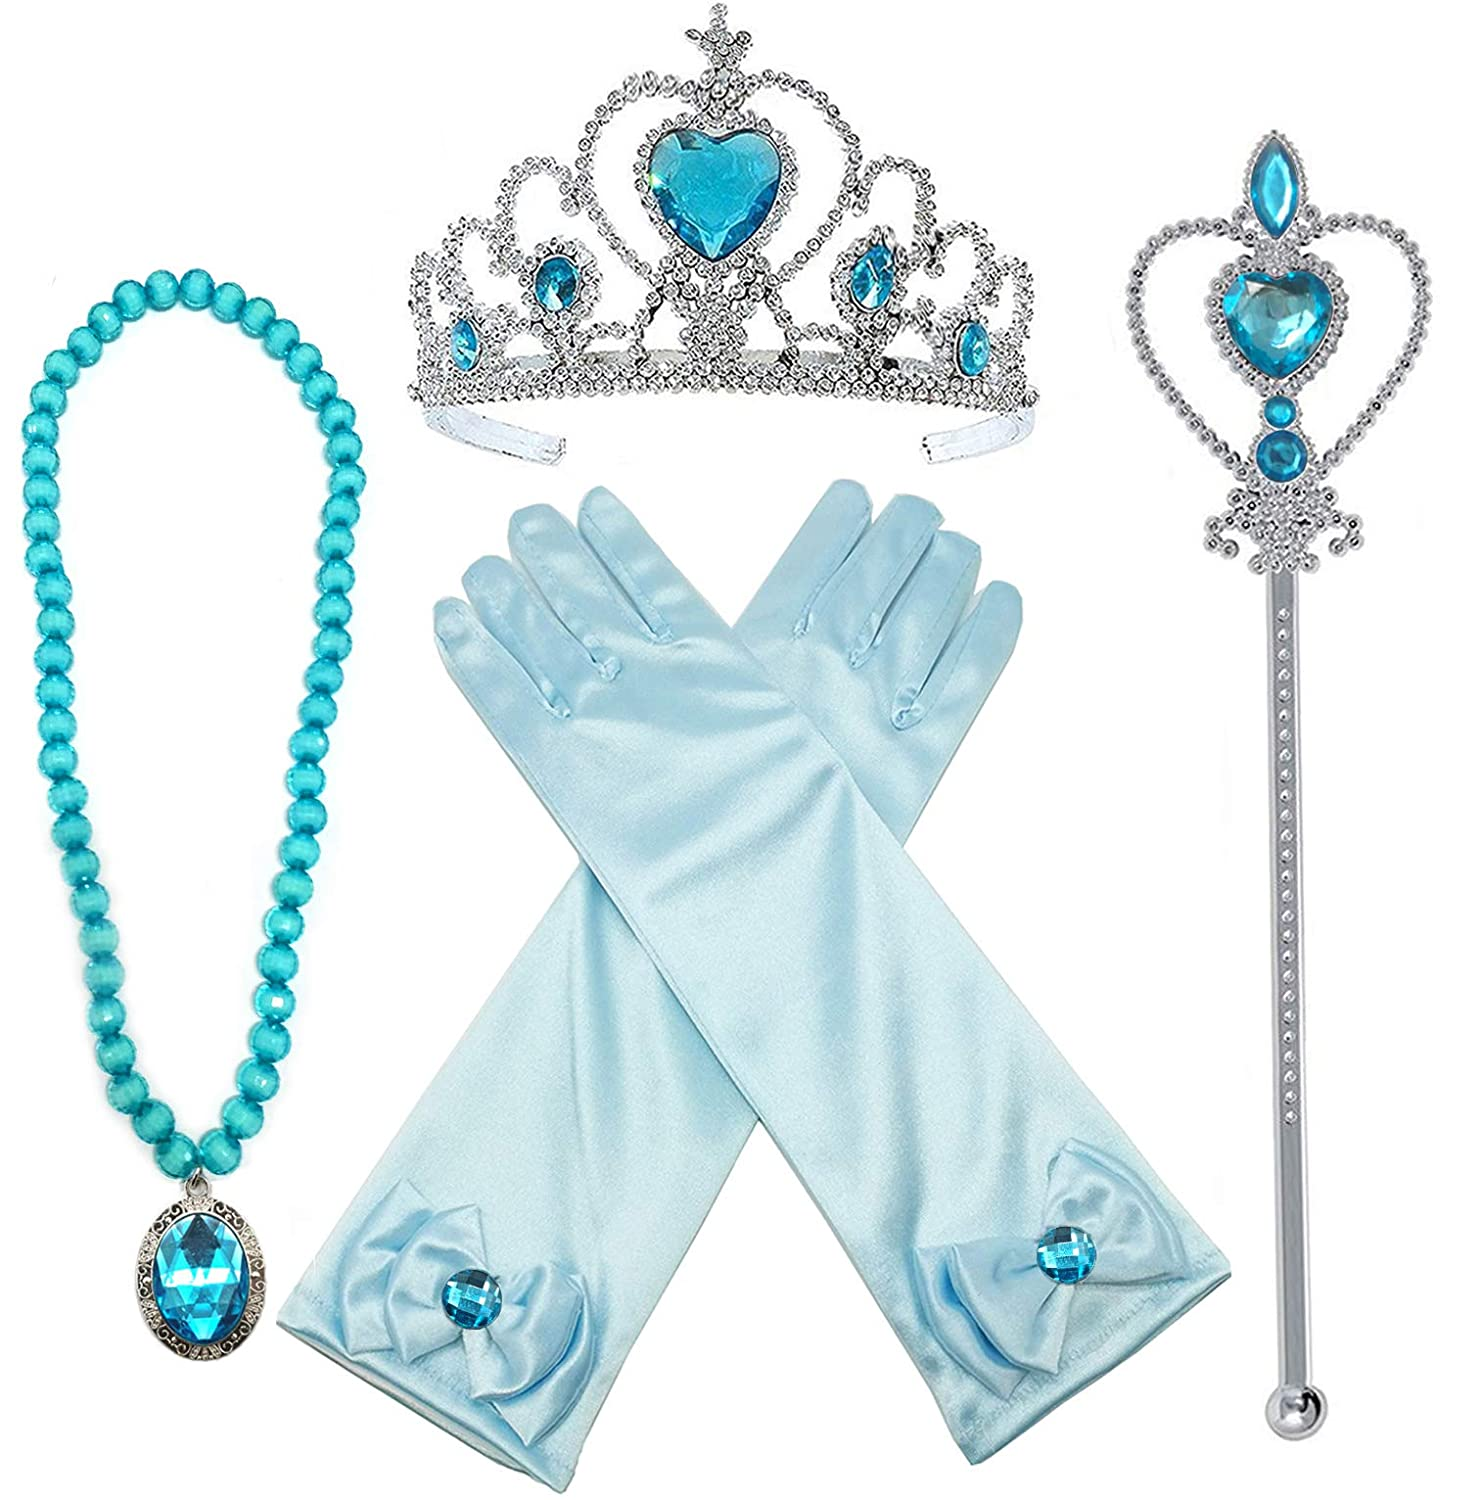 Alead Princess Elsa Dress Up Party Accessories et Gloves, Tiara, Wand And Necklace, Lake Blue, 4 Piece cmbb juhkjhg5454